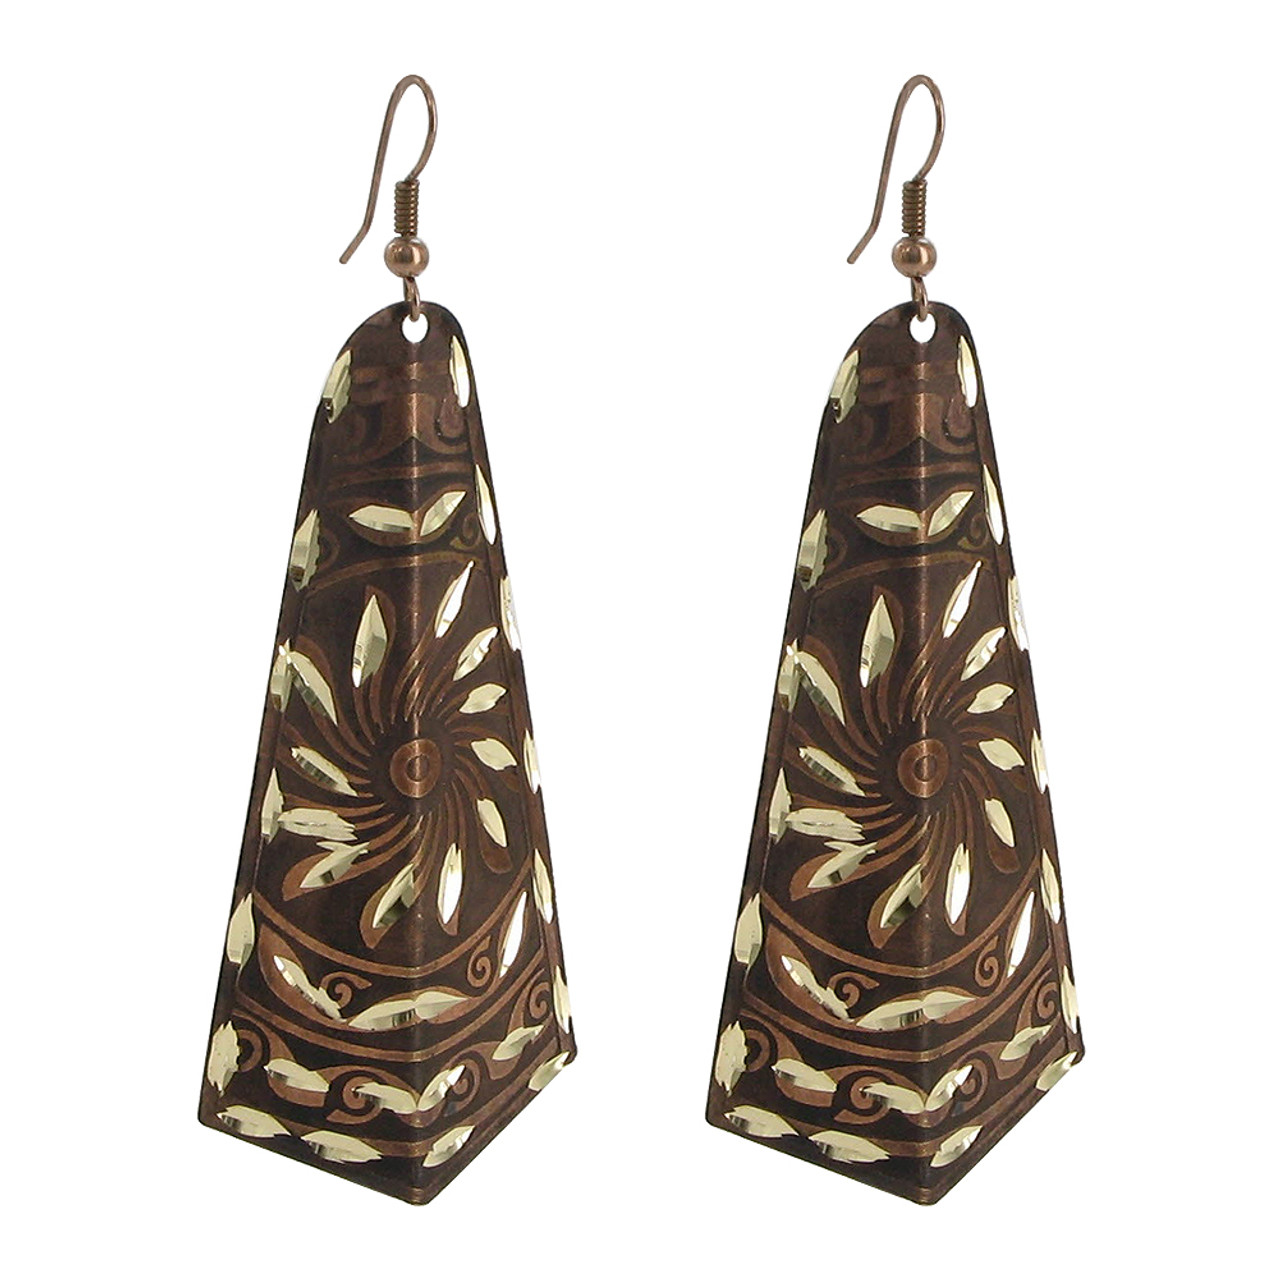 1 x 2.7 inch Designer Fashion Drop Earrings with French Wire Findings